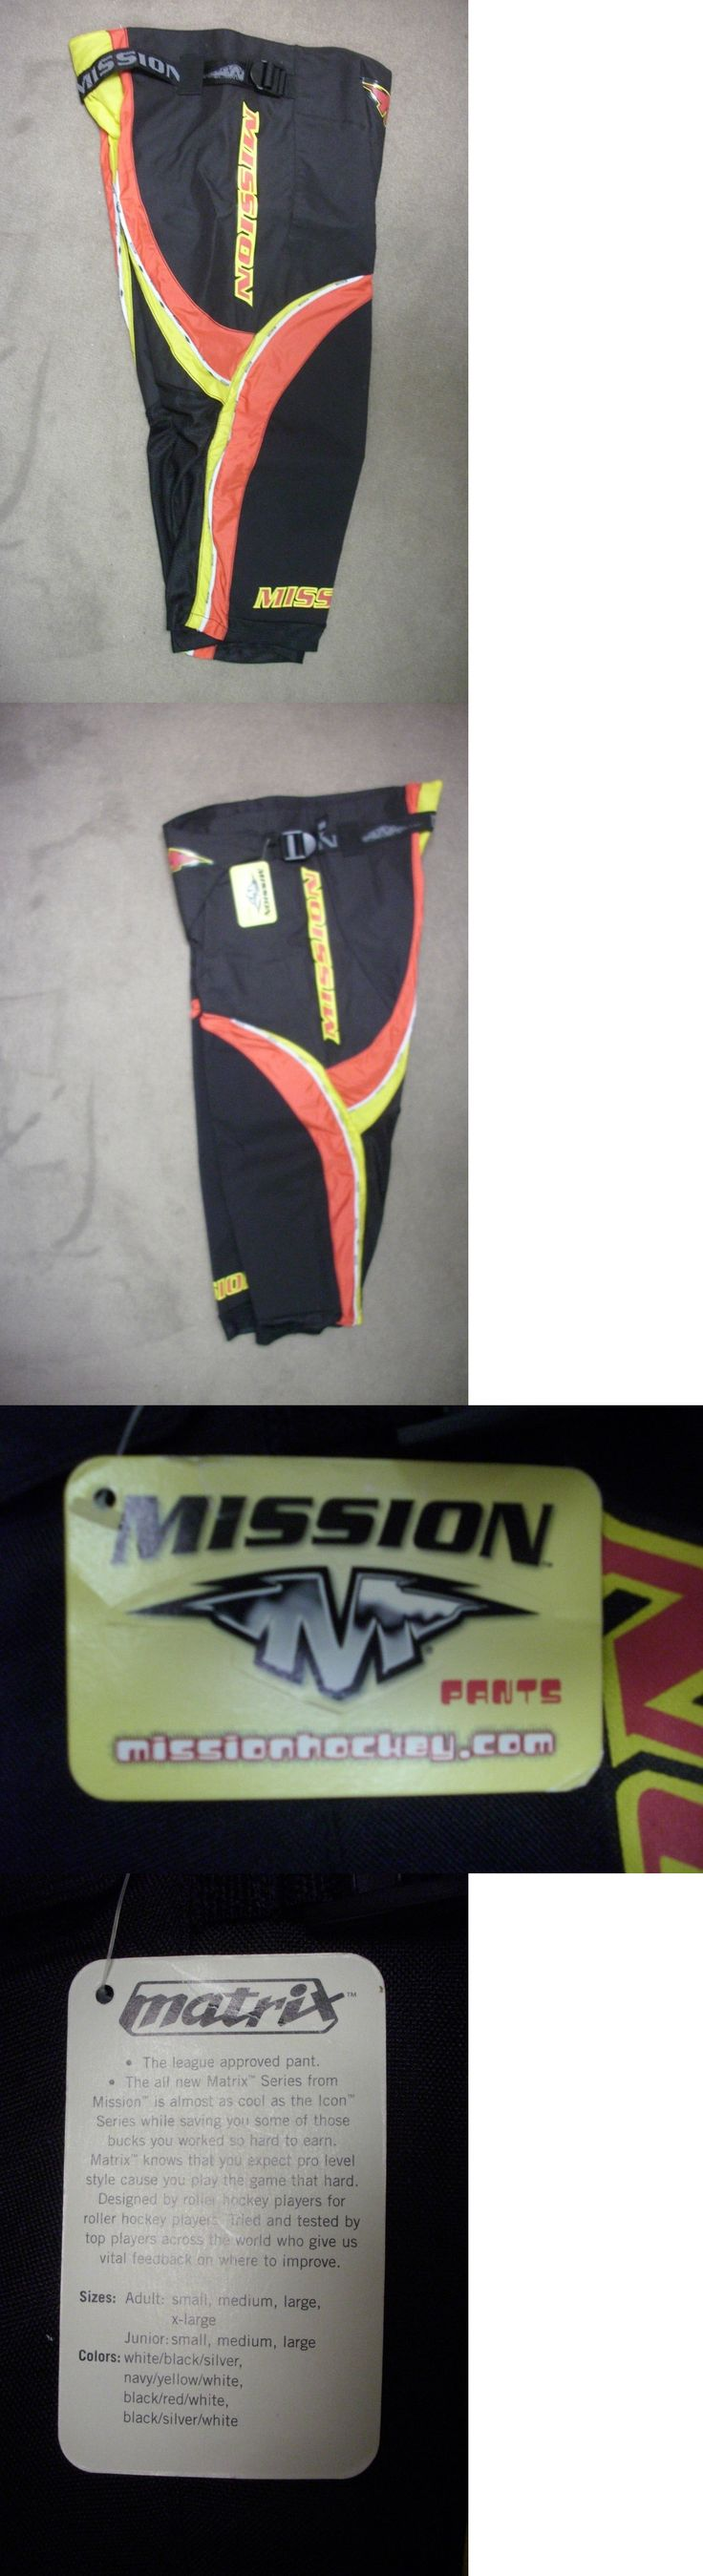 Other Hockey Protective Gear 79767: New! Mission Matrix Roller Hockey Pants Junior Large $89 Black/Red/Yellow -> BUY IT NOW ONLY: $35.99 on eBay!